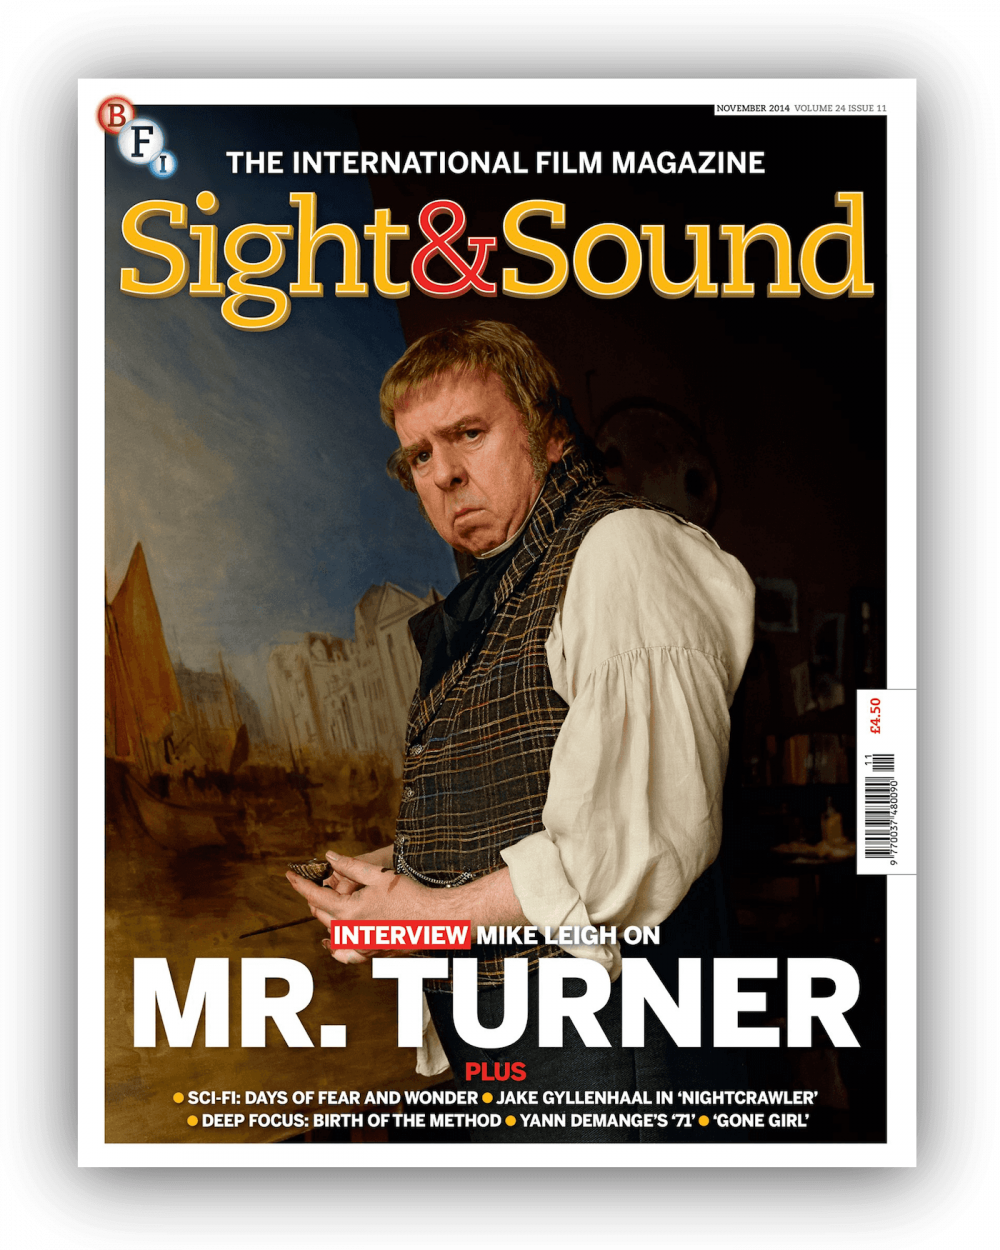 Subscribe to Sight & Sound magazine